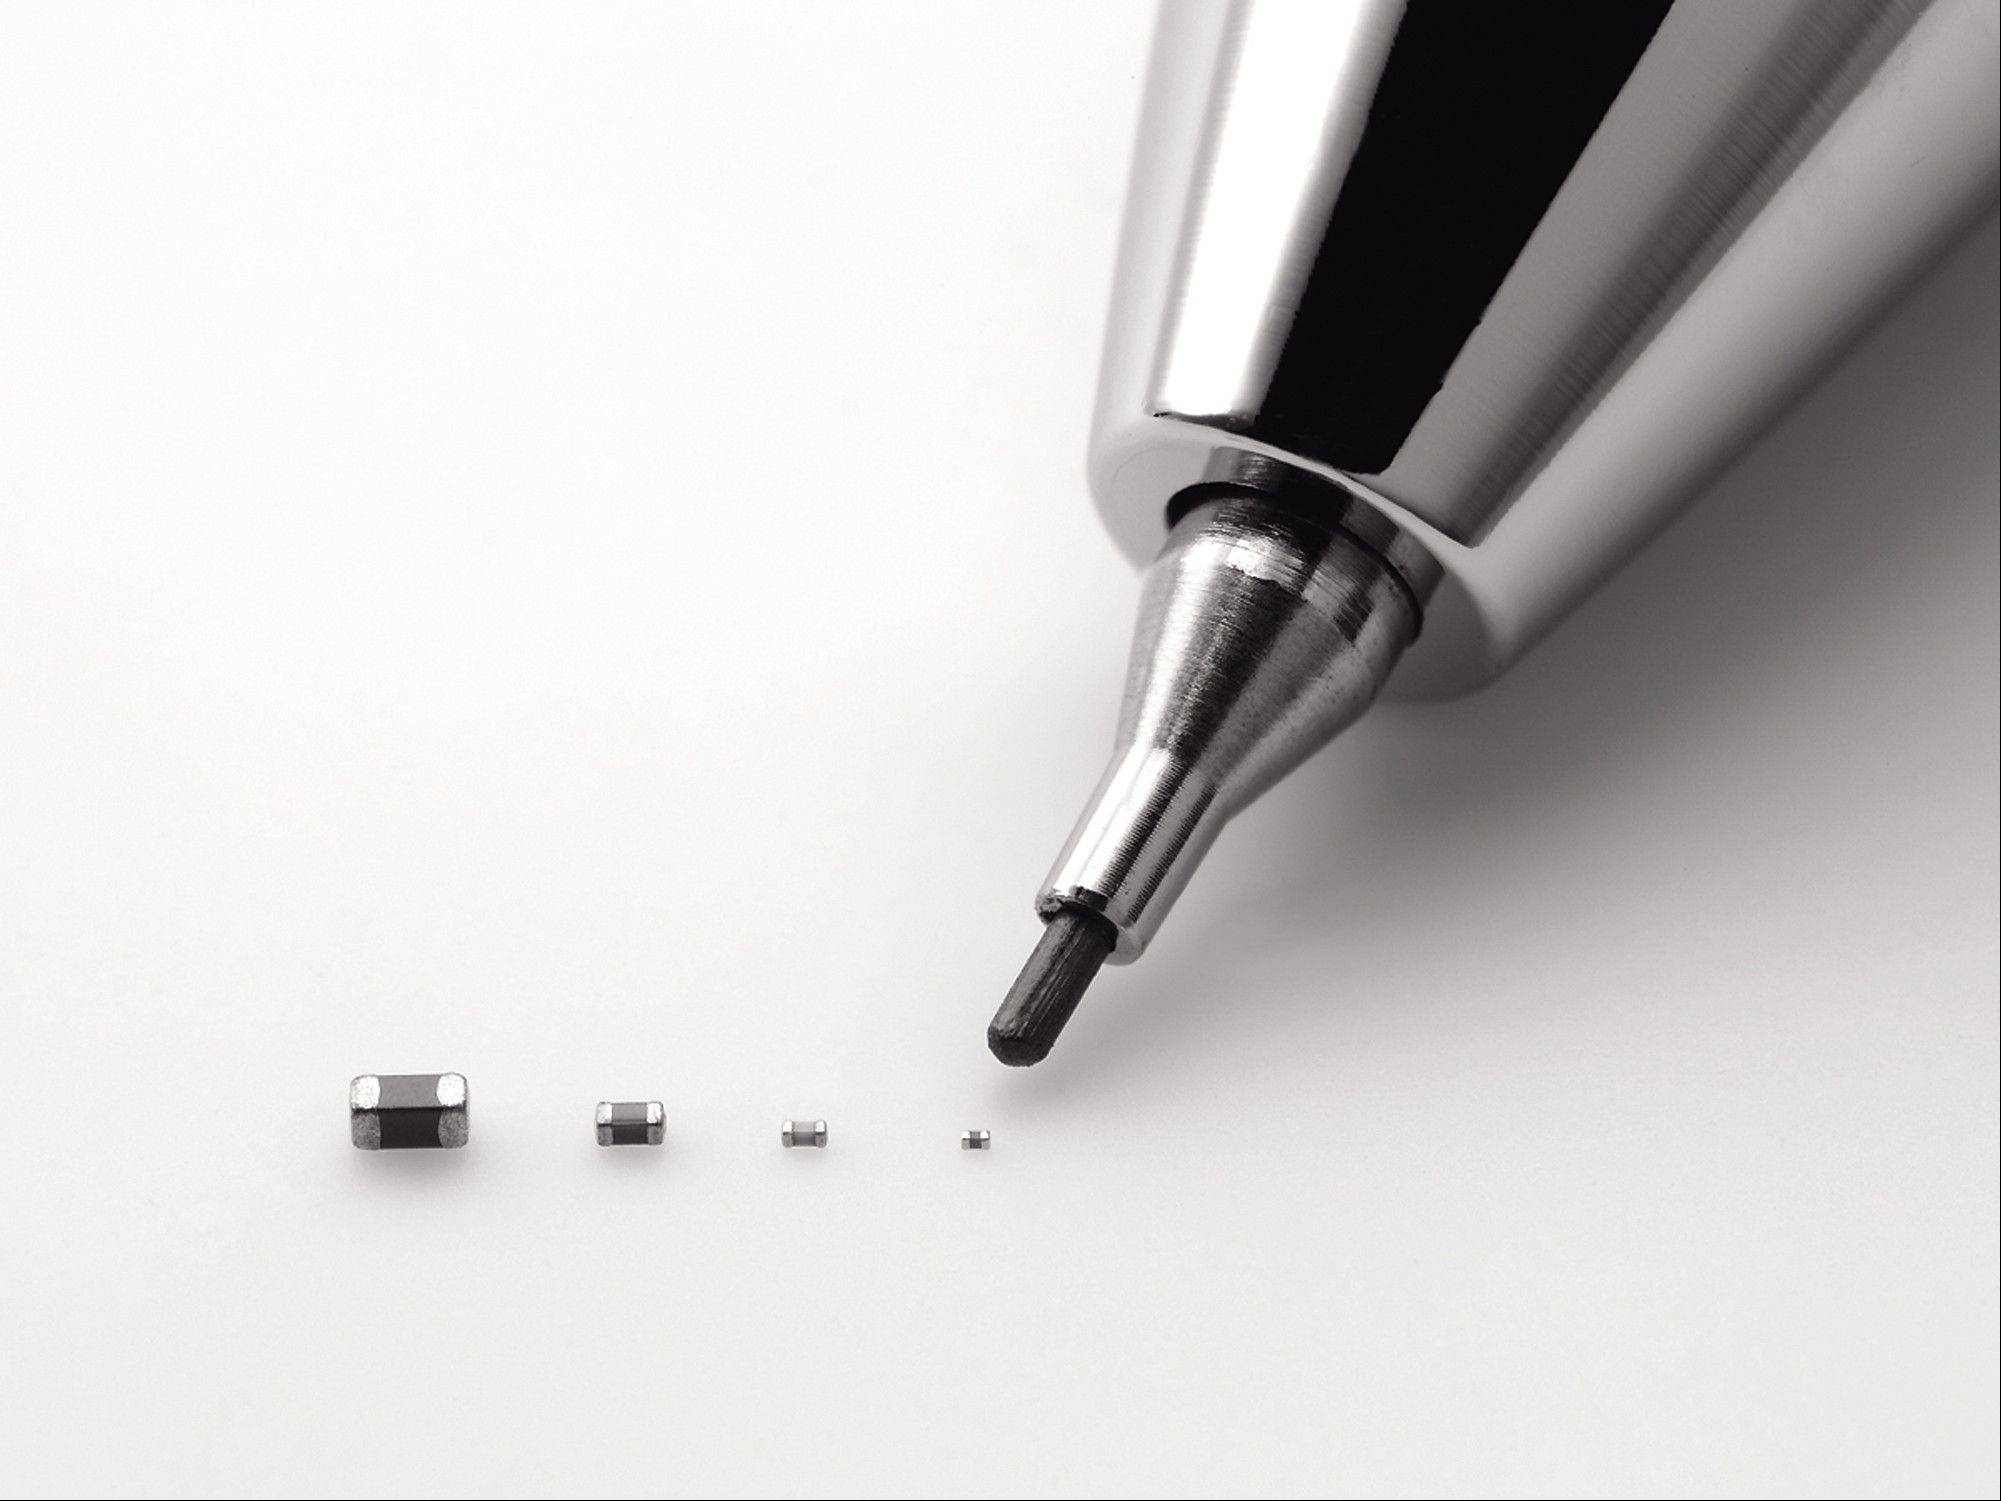 Murata's latest capacitor measures just 0.25 millimeter by 0.125 millimeter, right, is pointed by a mechanical pencil as it is displayed with its bigger size models. Small is big for Murata: The Japanese electronics maker has developed the world's tiniest component known as the capacitor. And that's big business. Capacitors, which store electric energy, are used in the dozens, even in the hundreds, in just about every type of gadget - smartphones, laptops, hybrid cars, medical equipment and digital cameras.